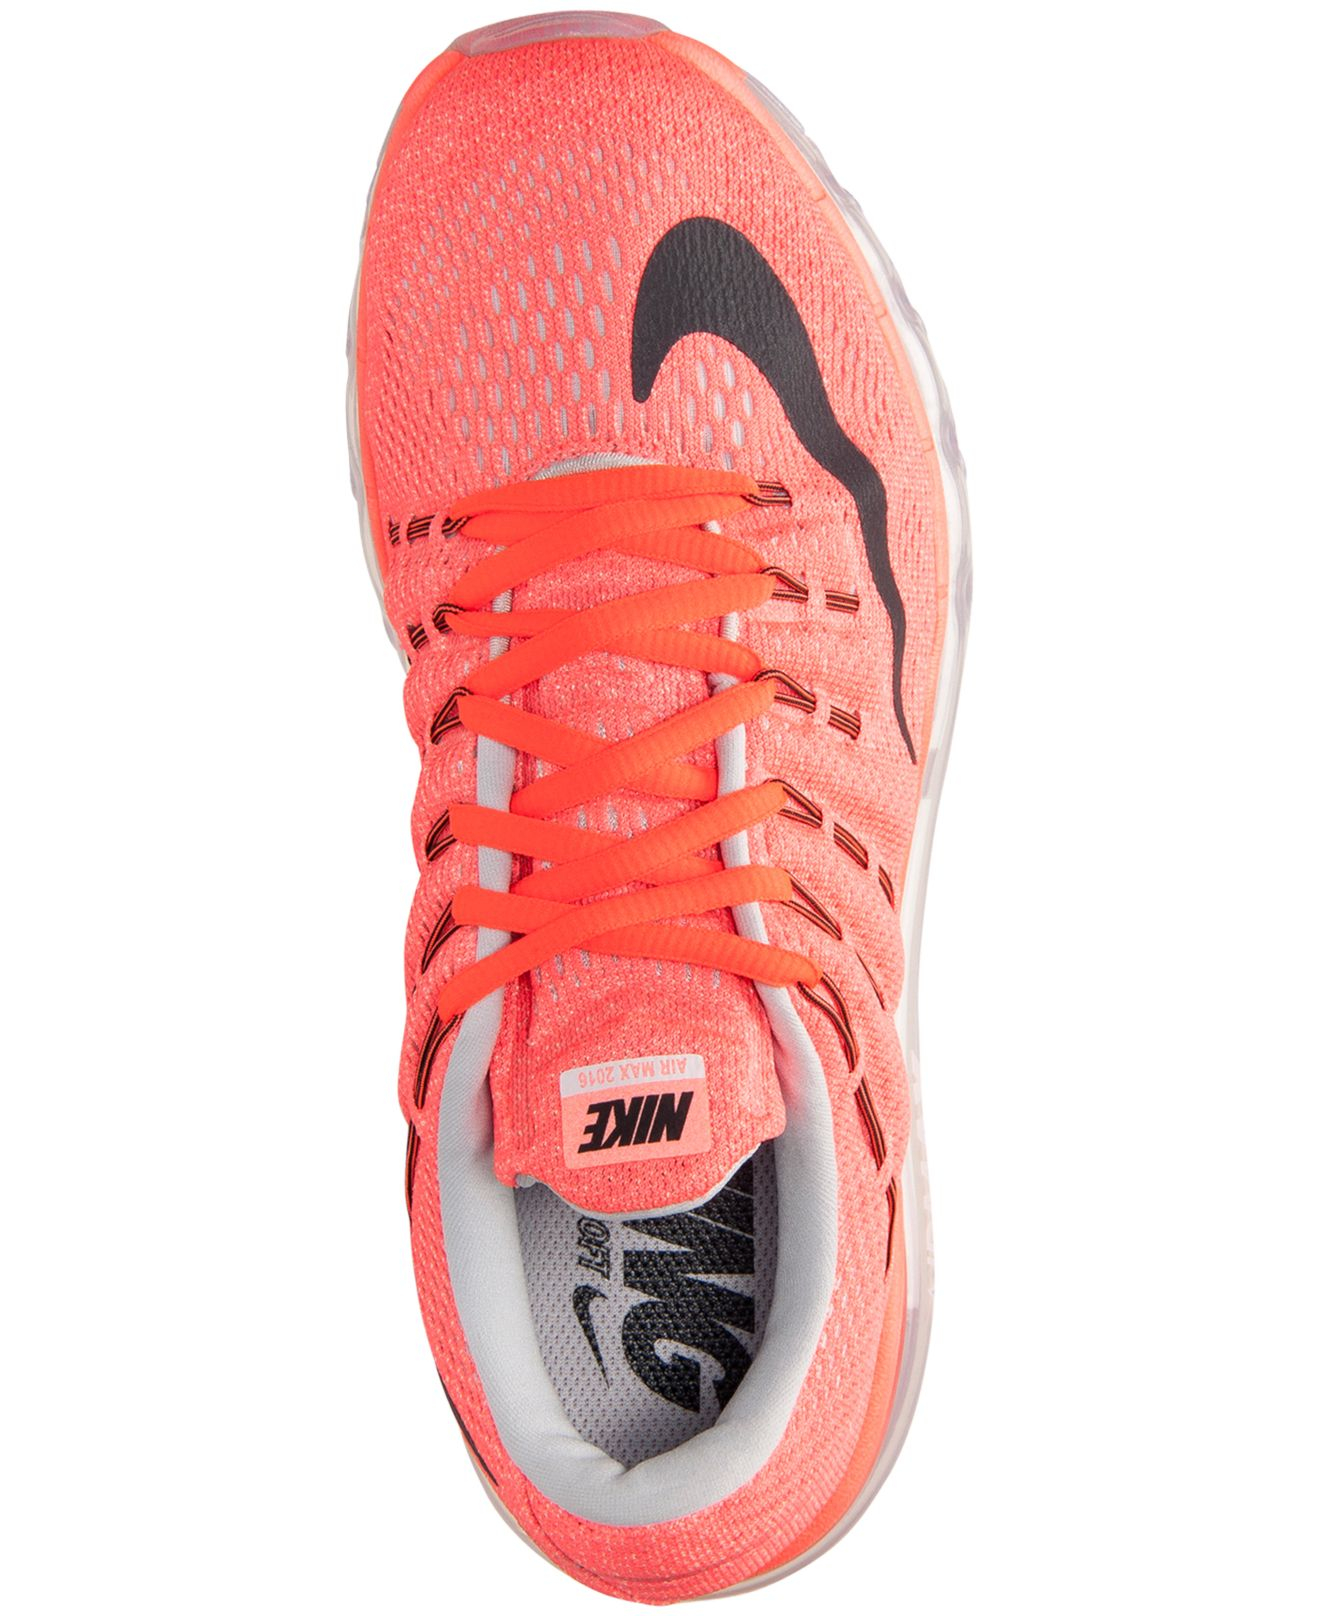 huge selection of a9167 96643 ... Nike Women s Air Max 2016 Running Sneakers From Finish Line in Orange    Lyst ...